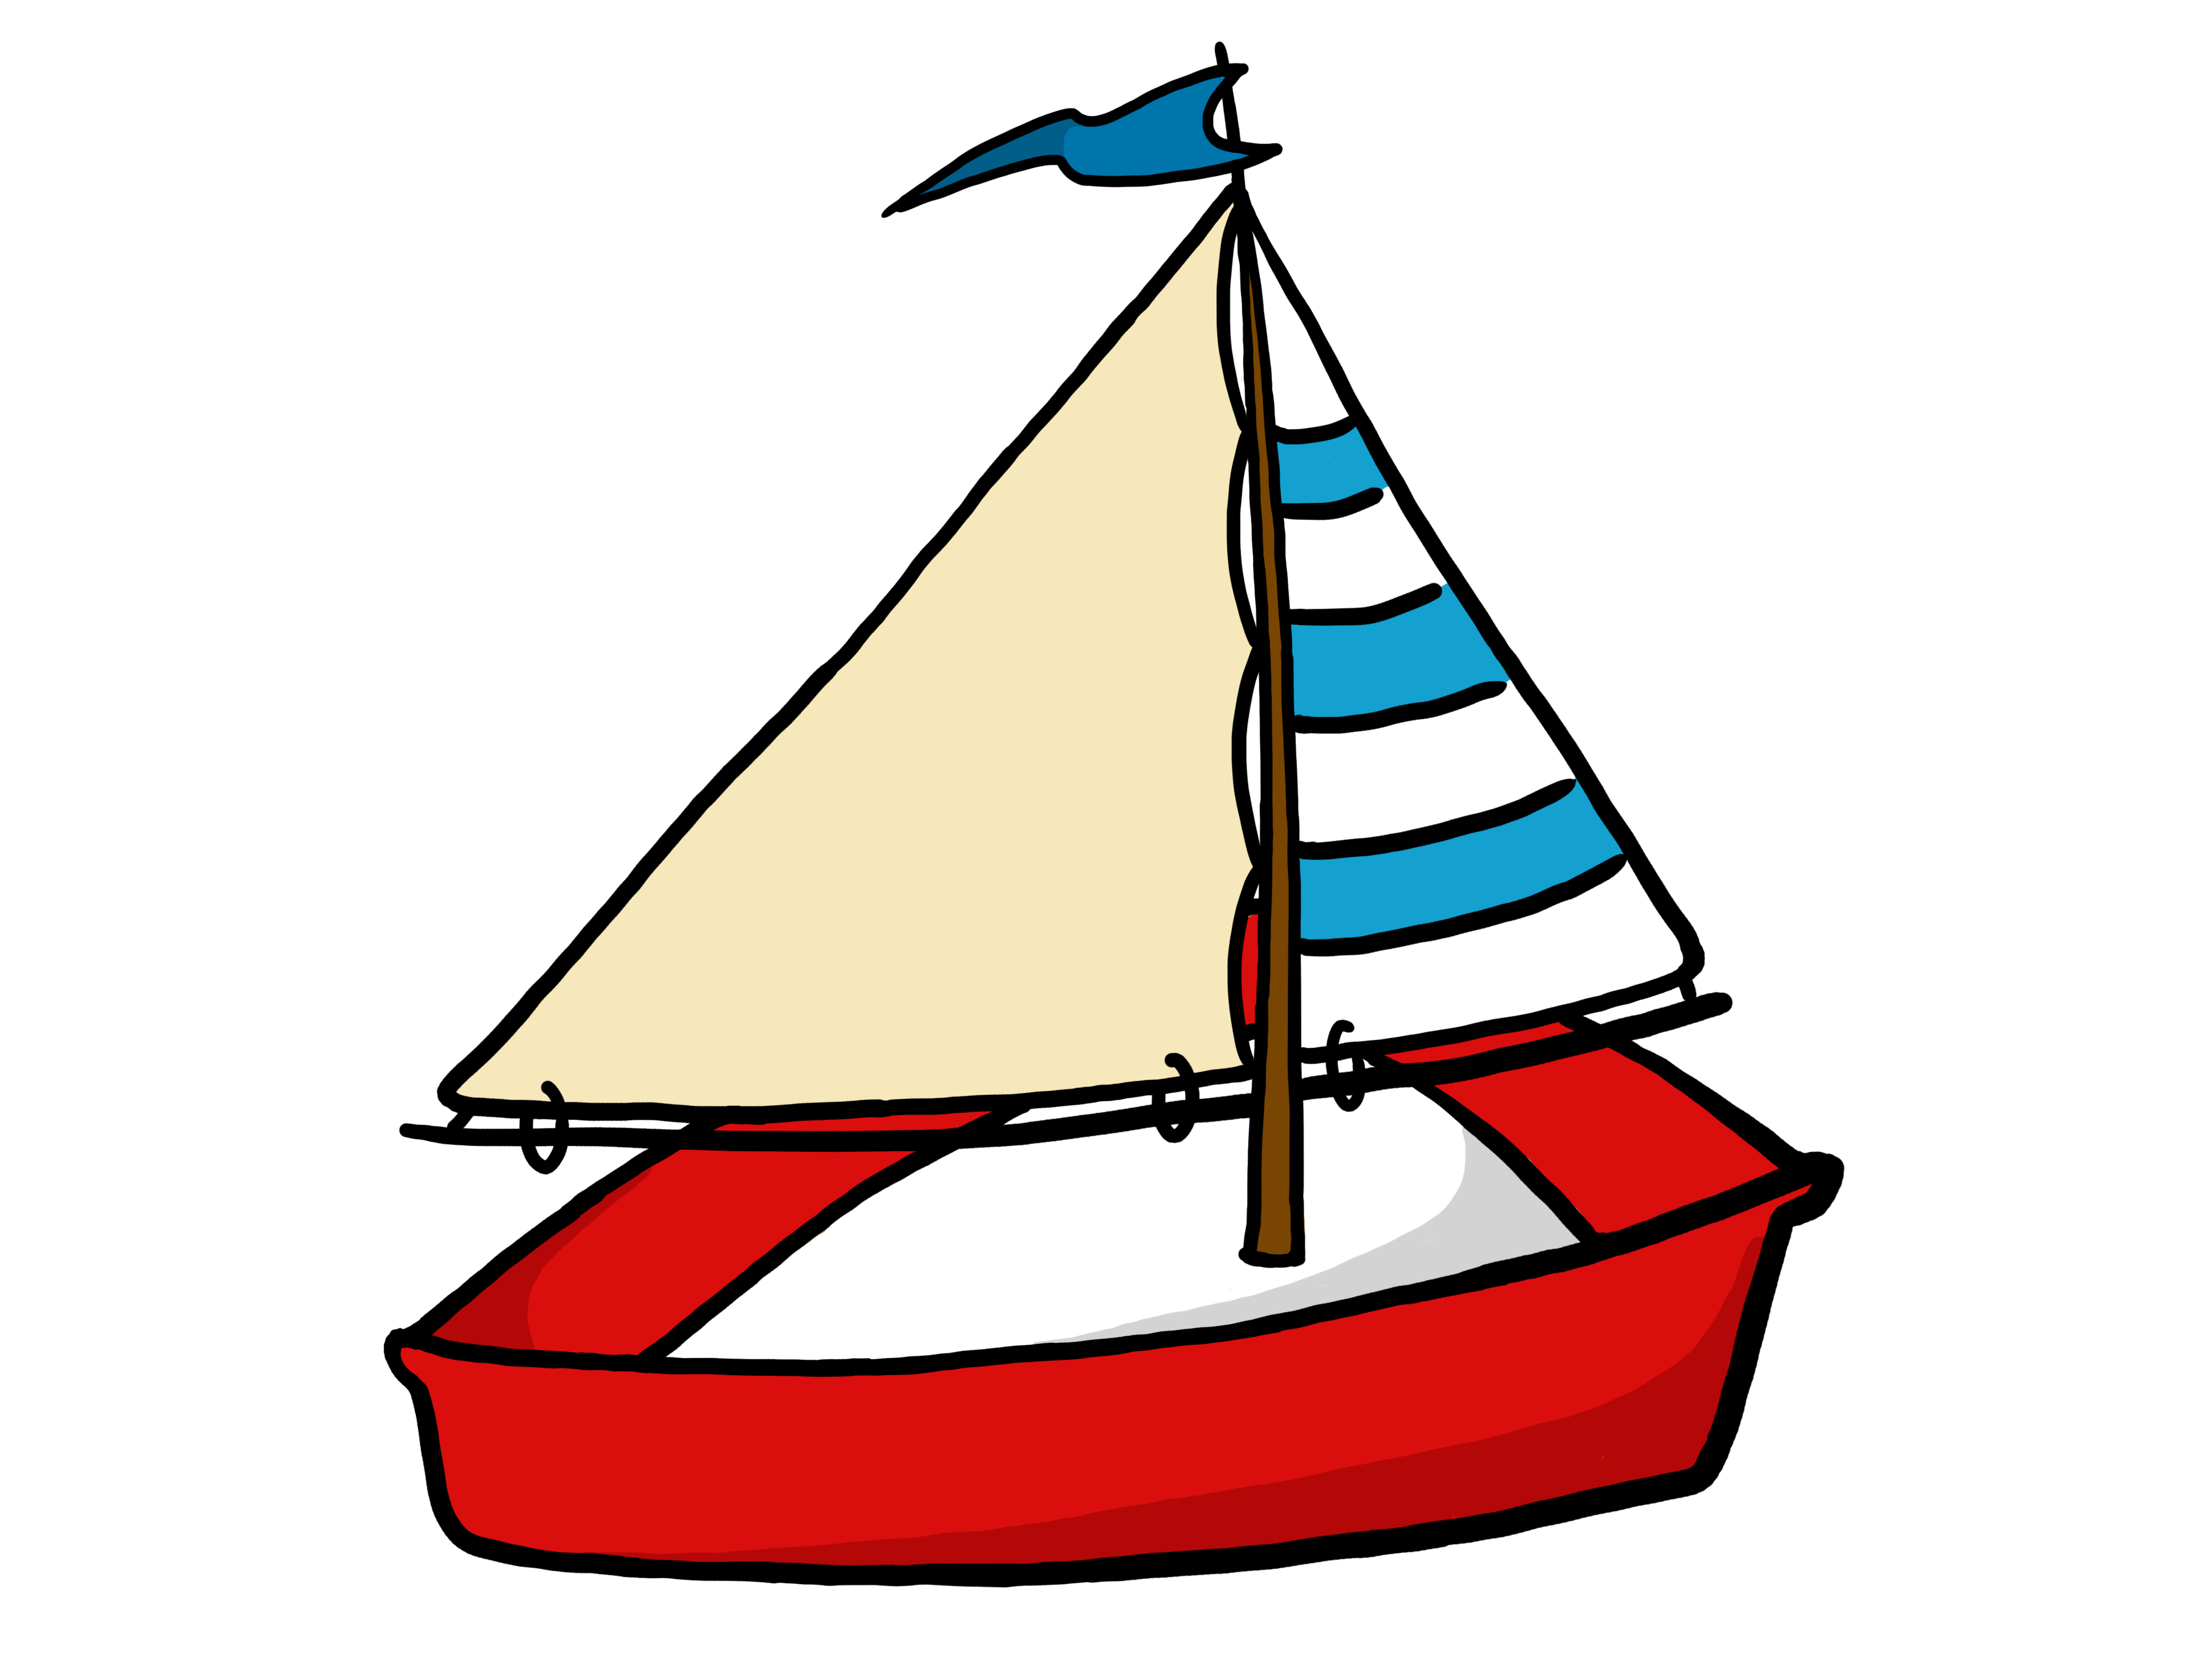 Yellow ship clipart